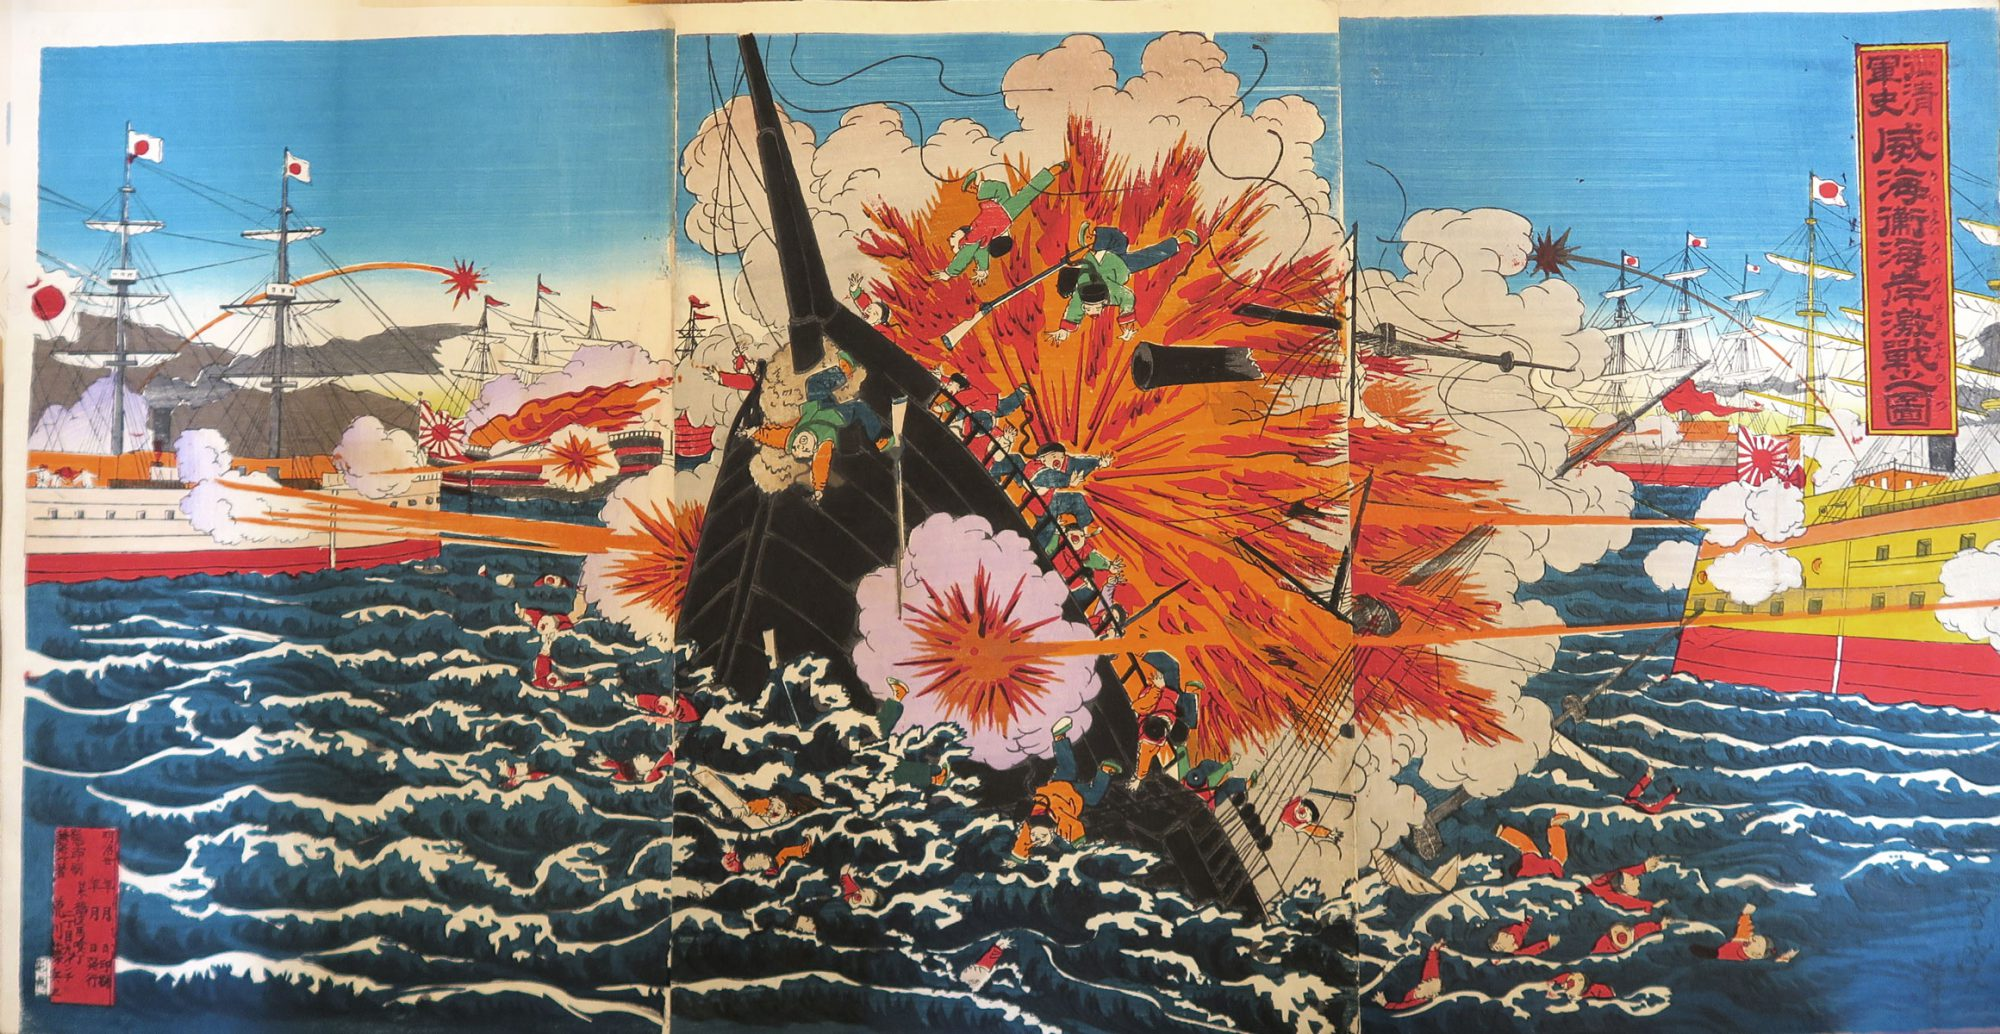 A collection of 34 late-19th century Japanese hand-coloured woodblock triptychs depicting scenes from the First Sino-Japanese Conflict